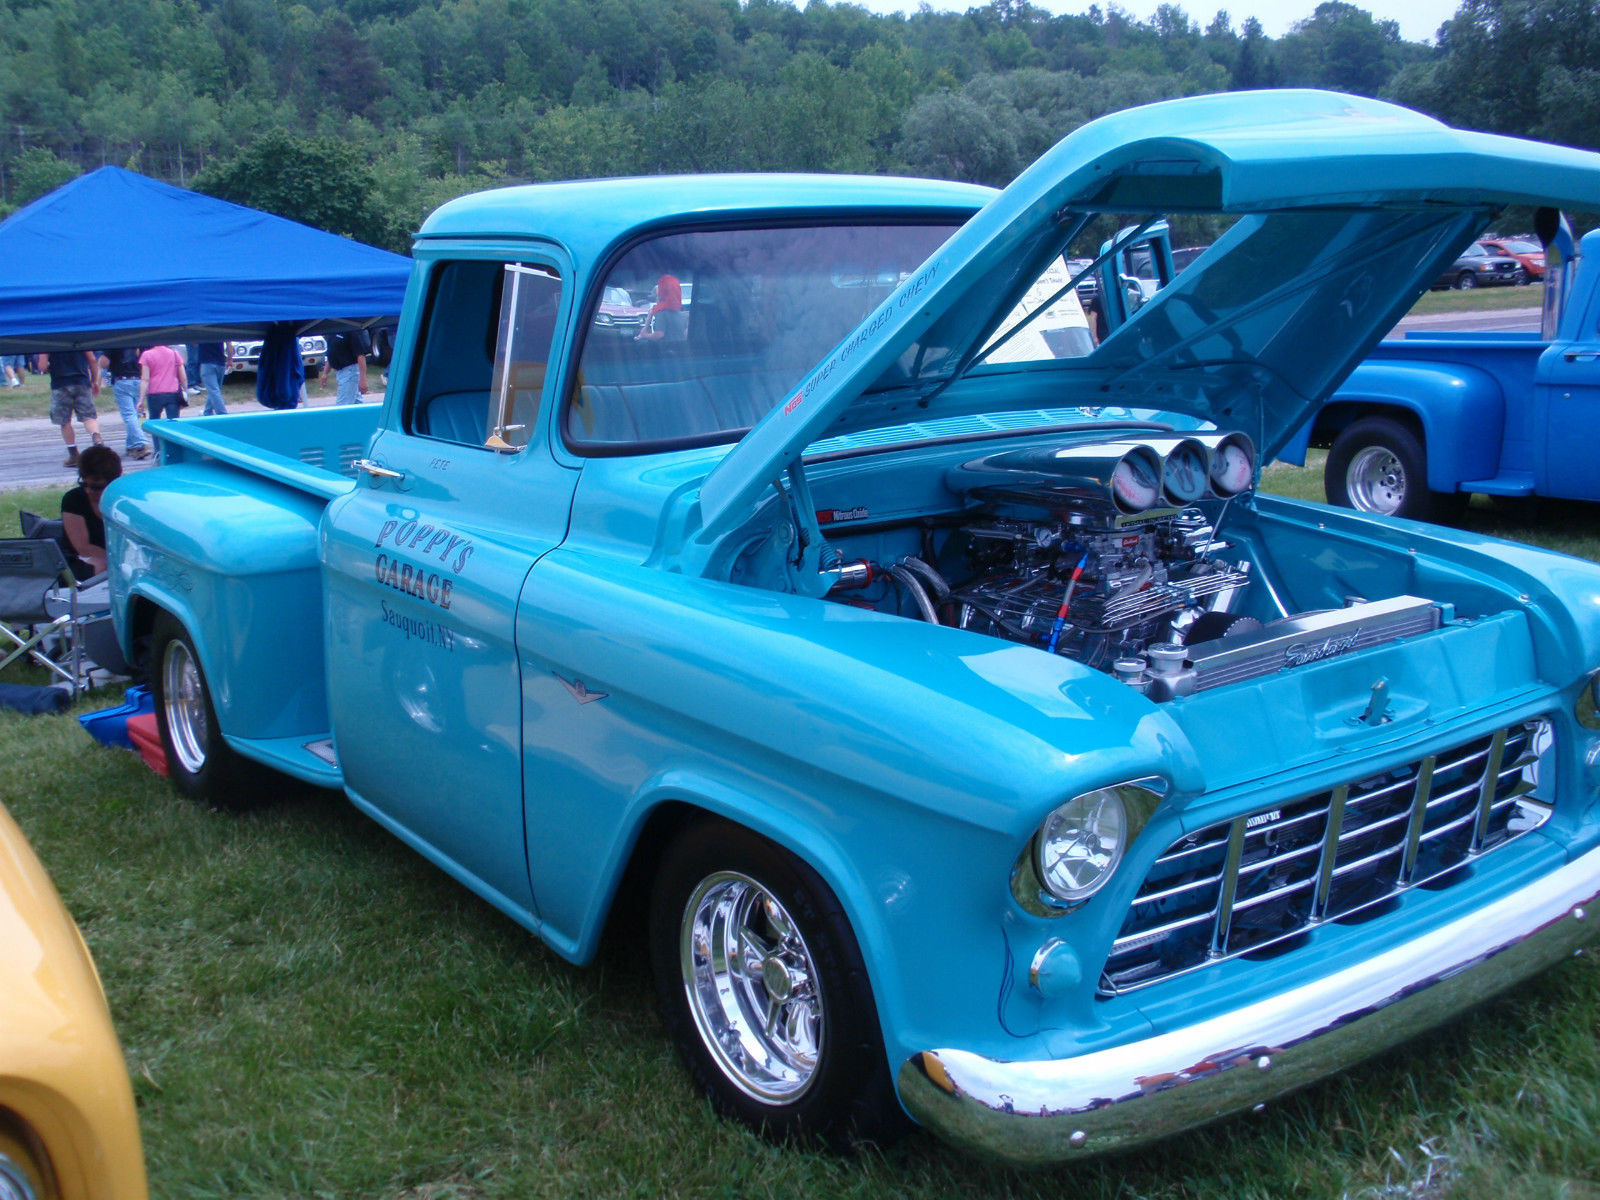 Chevy Pick Up Truck 1956 Supercharged Pro Street Classic Chevrolet 1954 Gauge Cluster Other Pickups